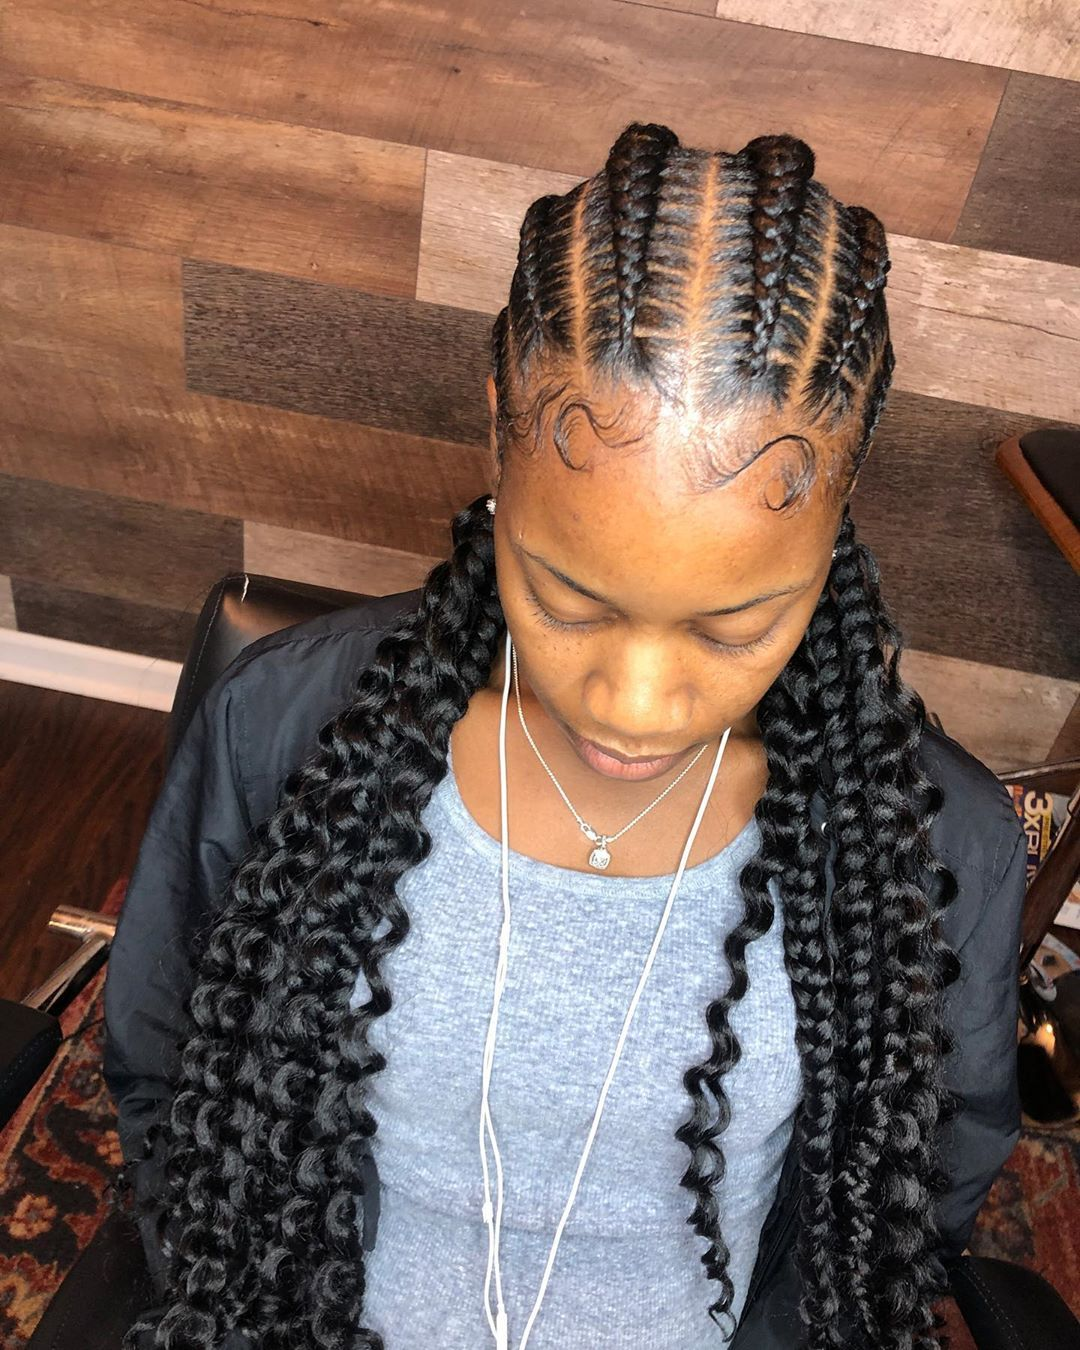 E The Braid Specialist On Instagram 6 Feed In Braids With Boho Ends Booking Now Available Online Hair Styles Feed In Braid Feed In Braids Hairstyles